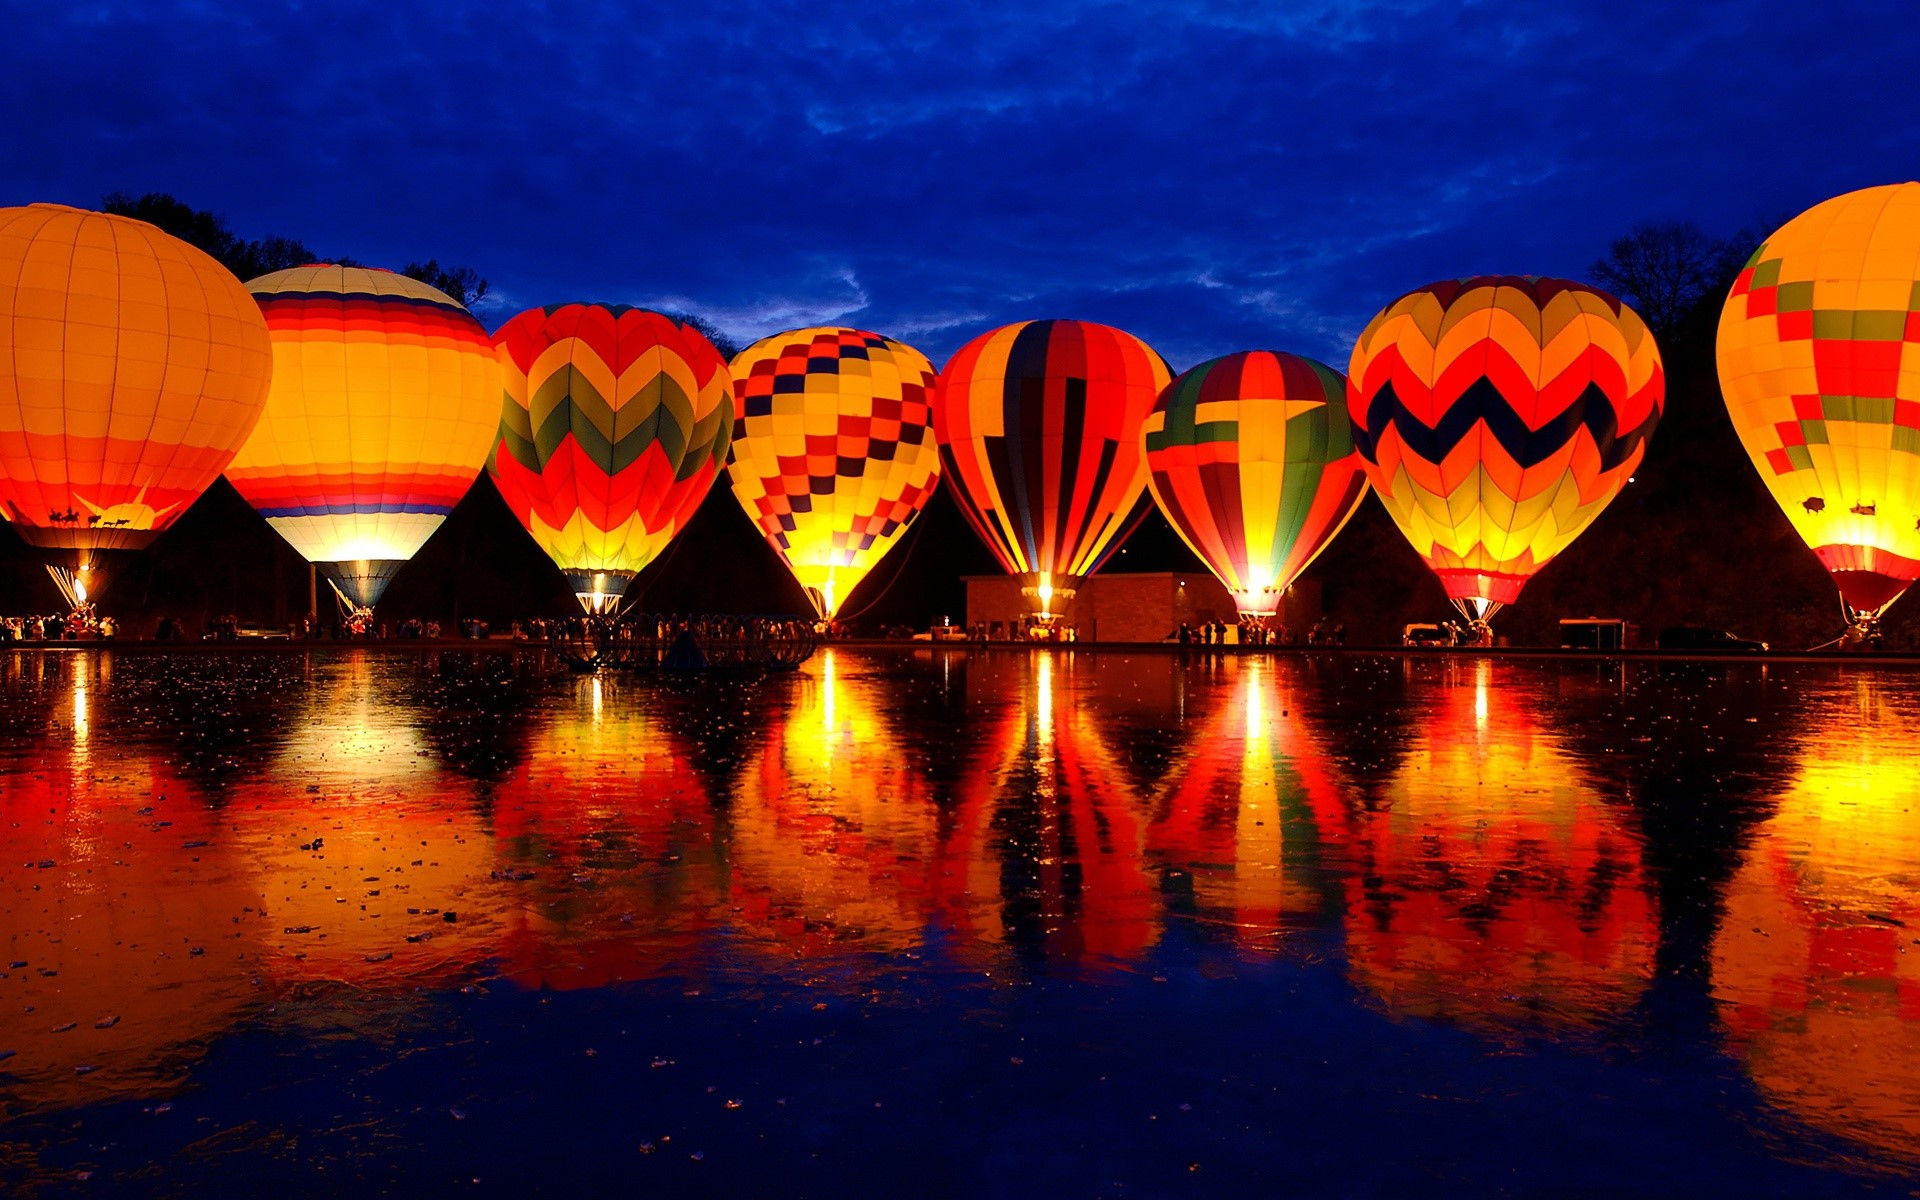 Wallpaper Festival of hot air balloons